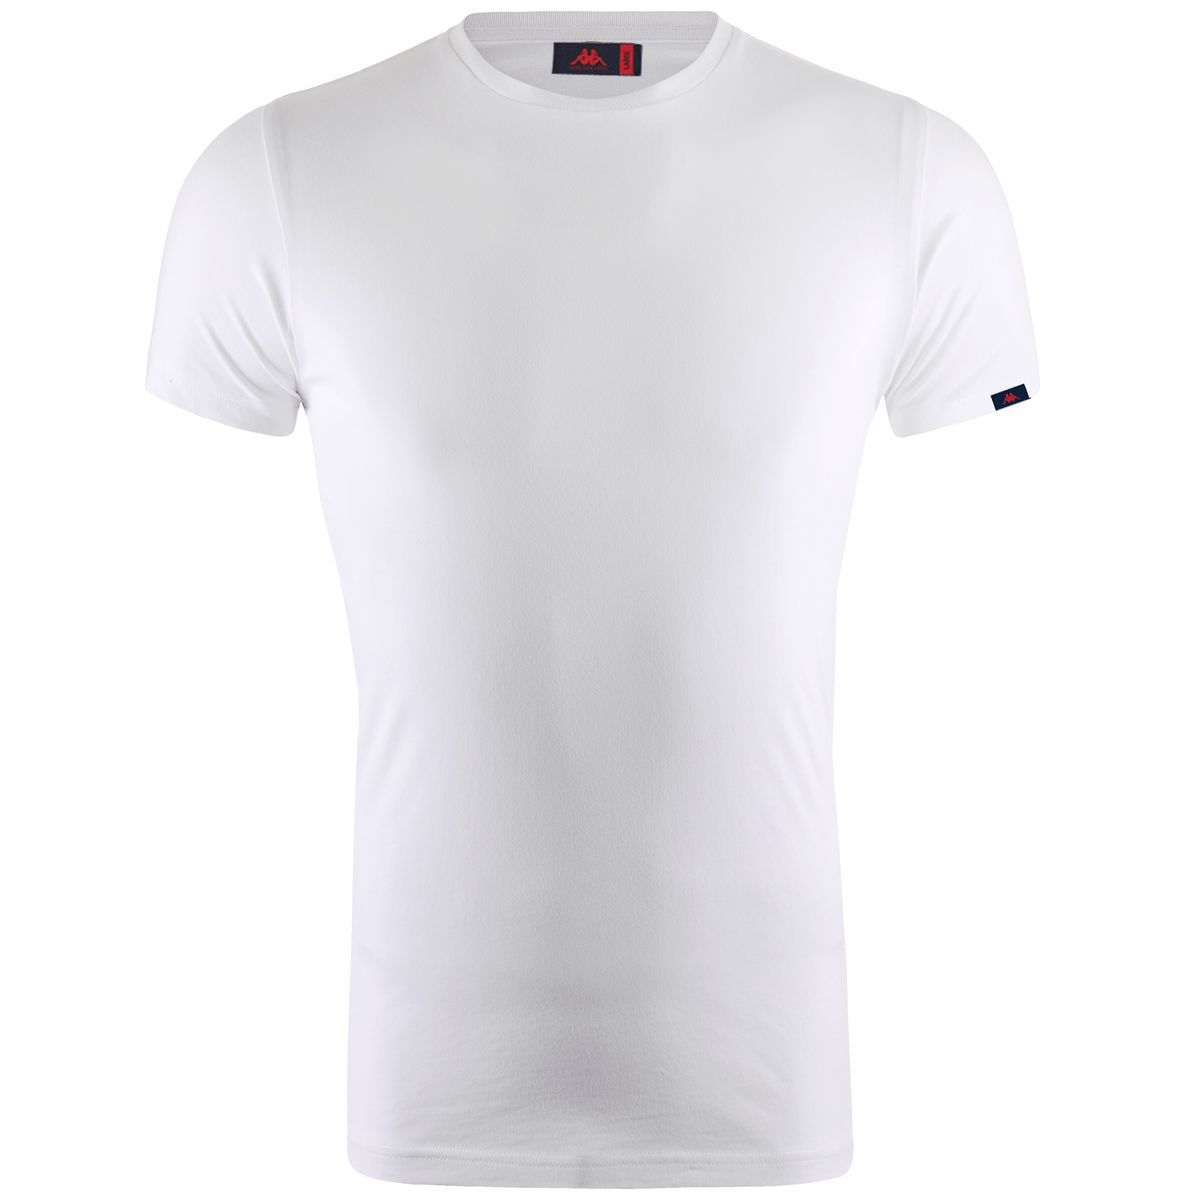 Robe di Kappa T-shirts & Top uomo-601LIH0